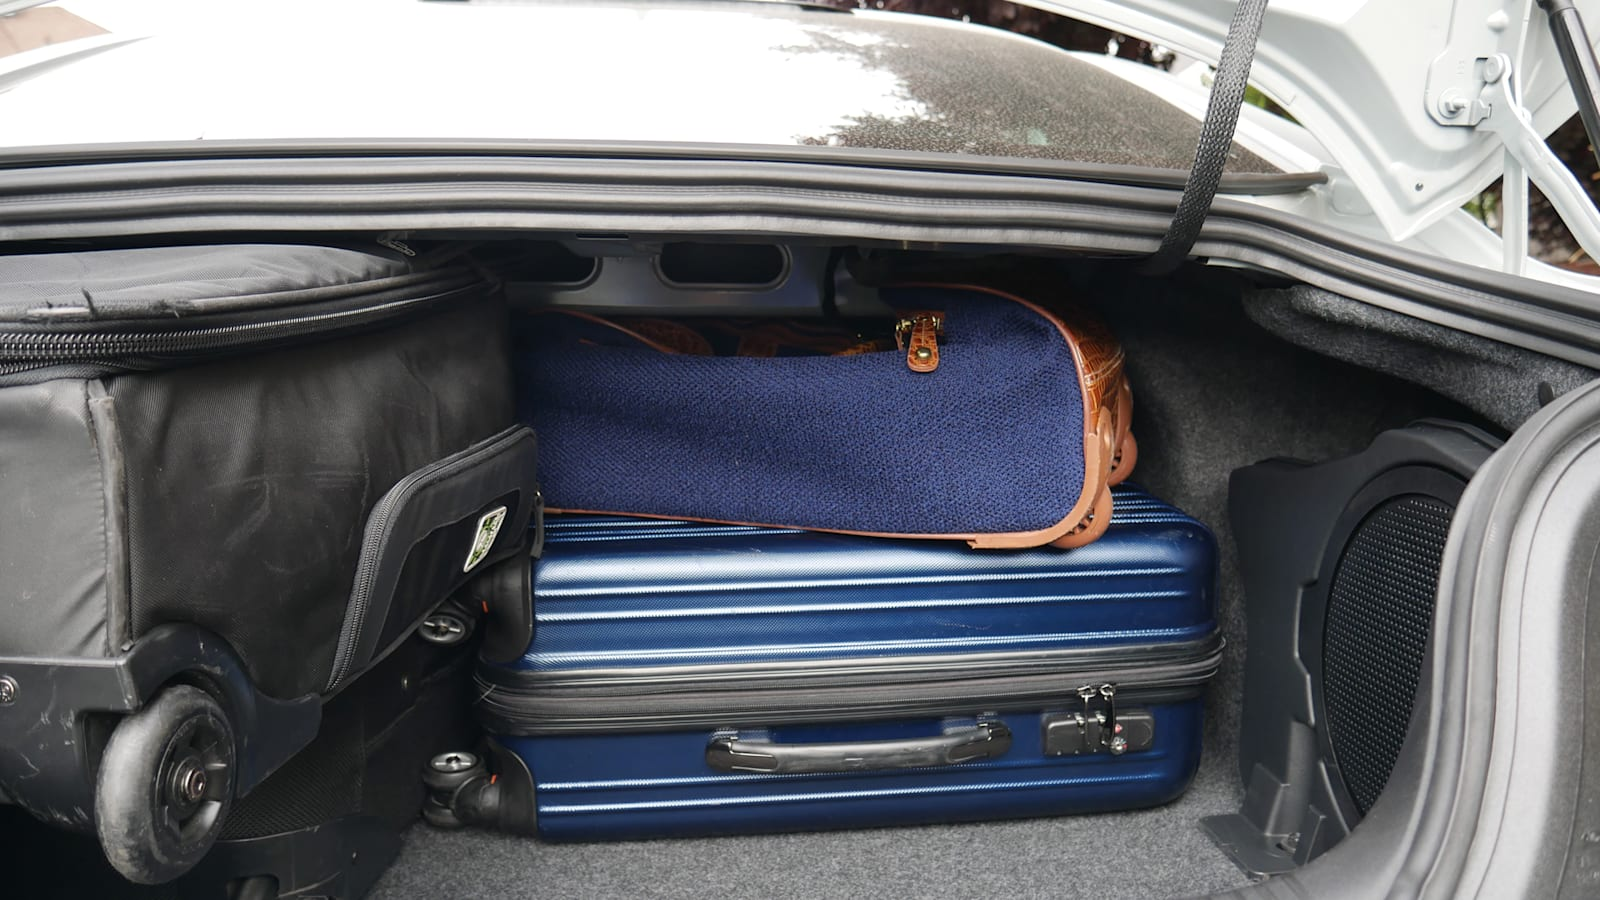 2021 Ford Mustang Luggage Test shmushed fancy bag